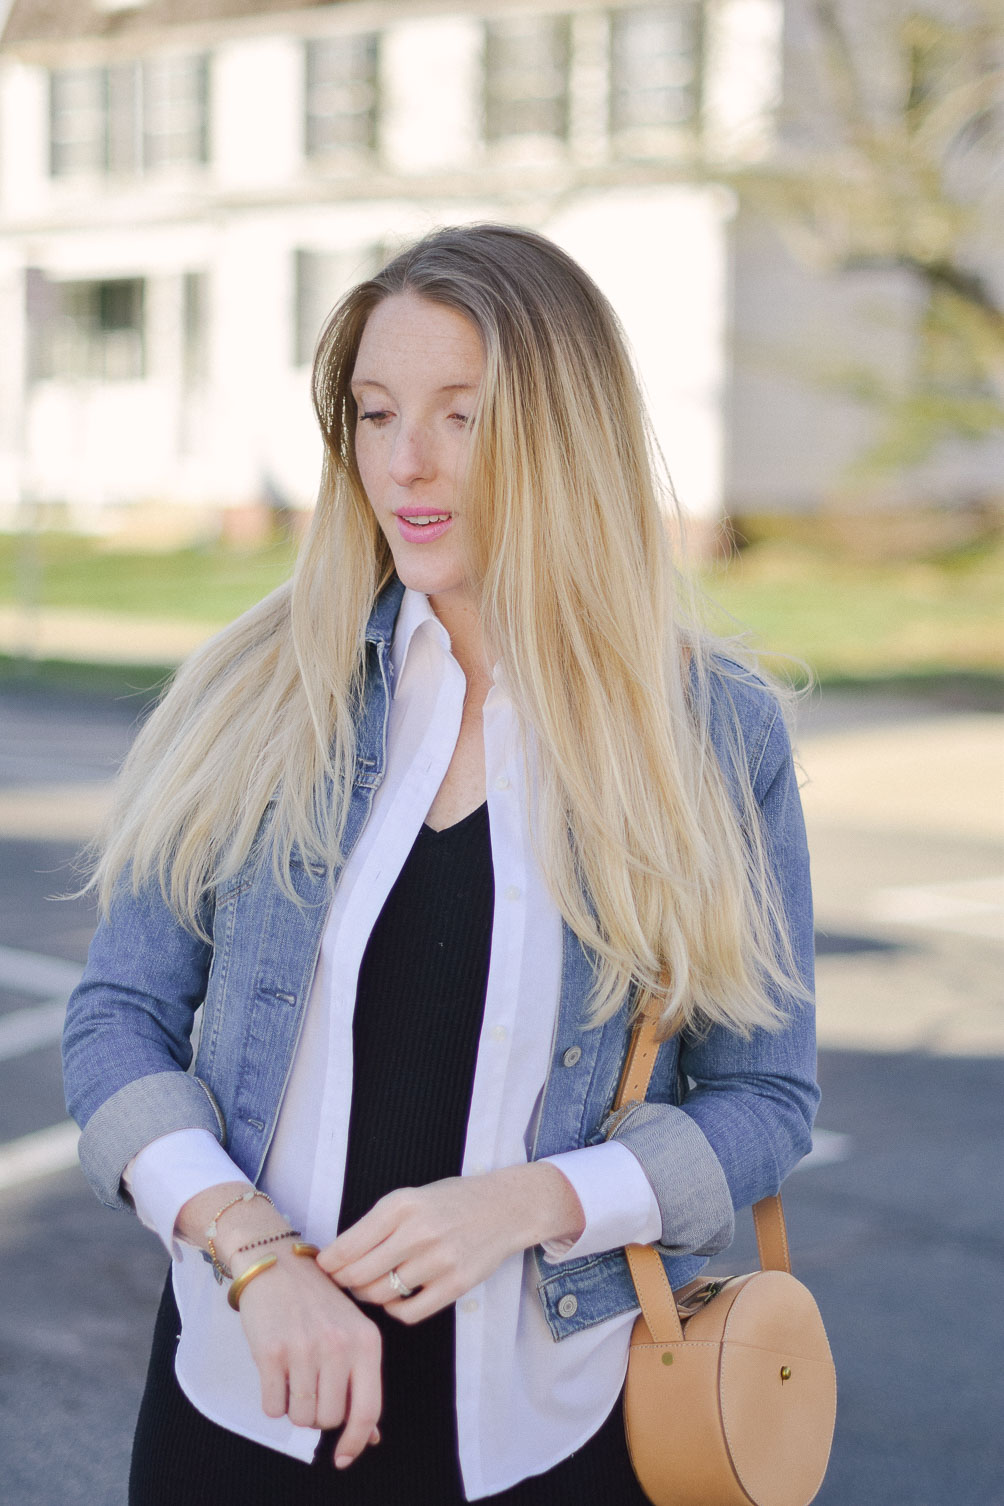 styling a spring denim jacket for easy maternity style with leather circle bag and suede heels